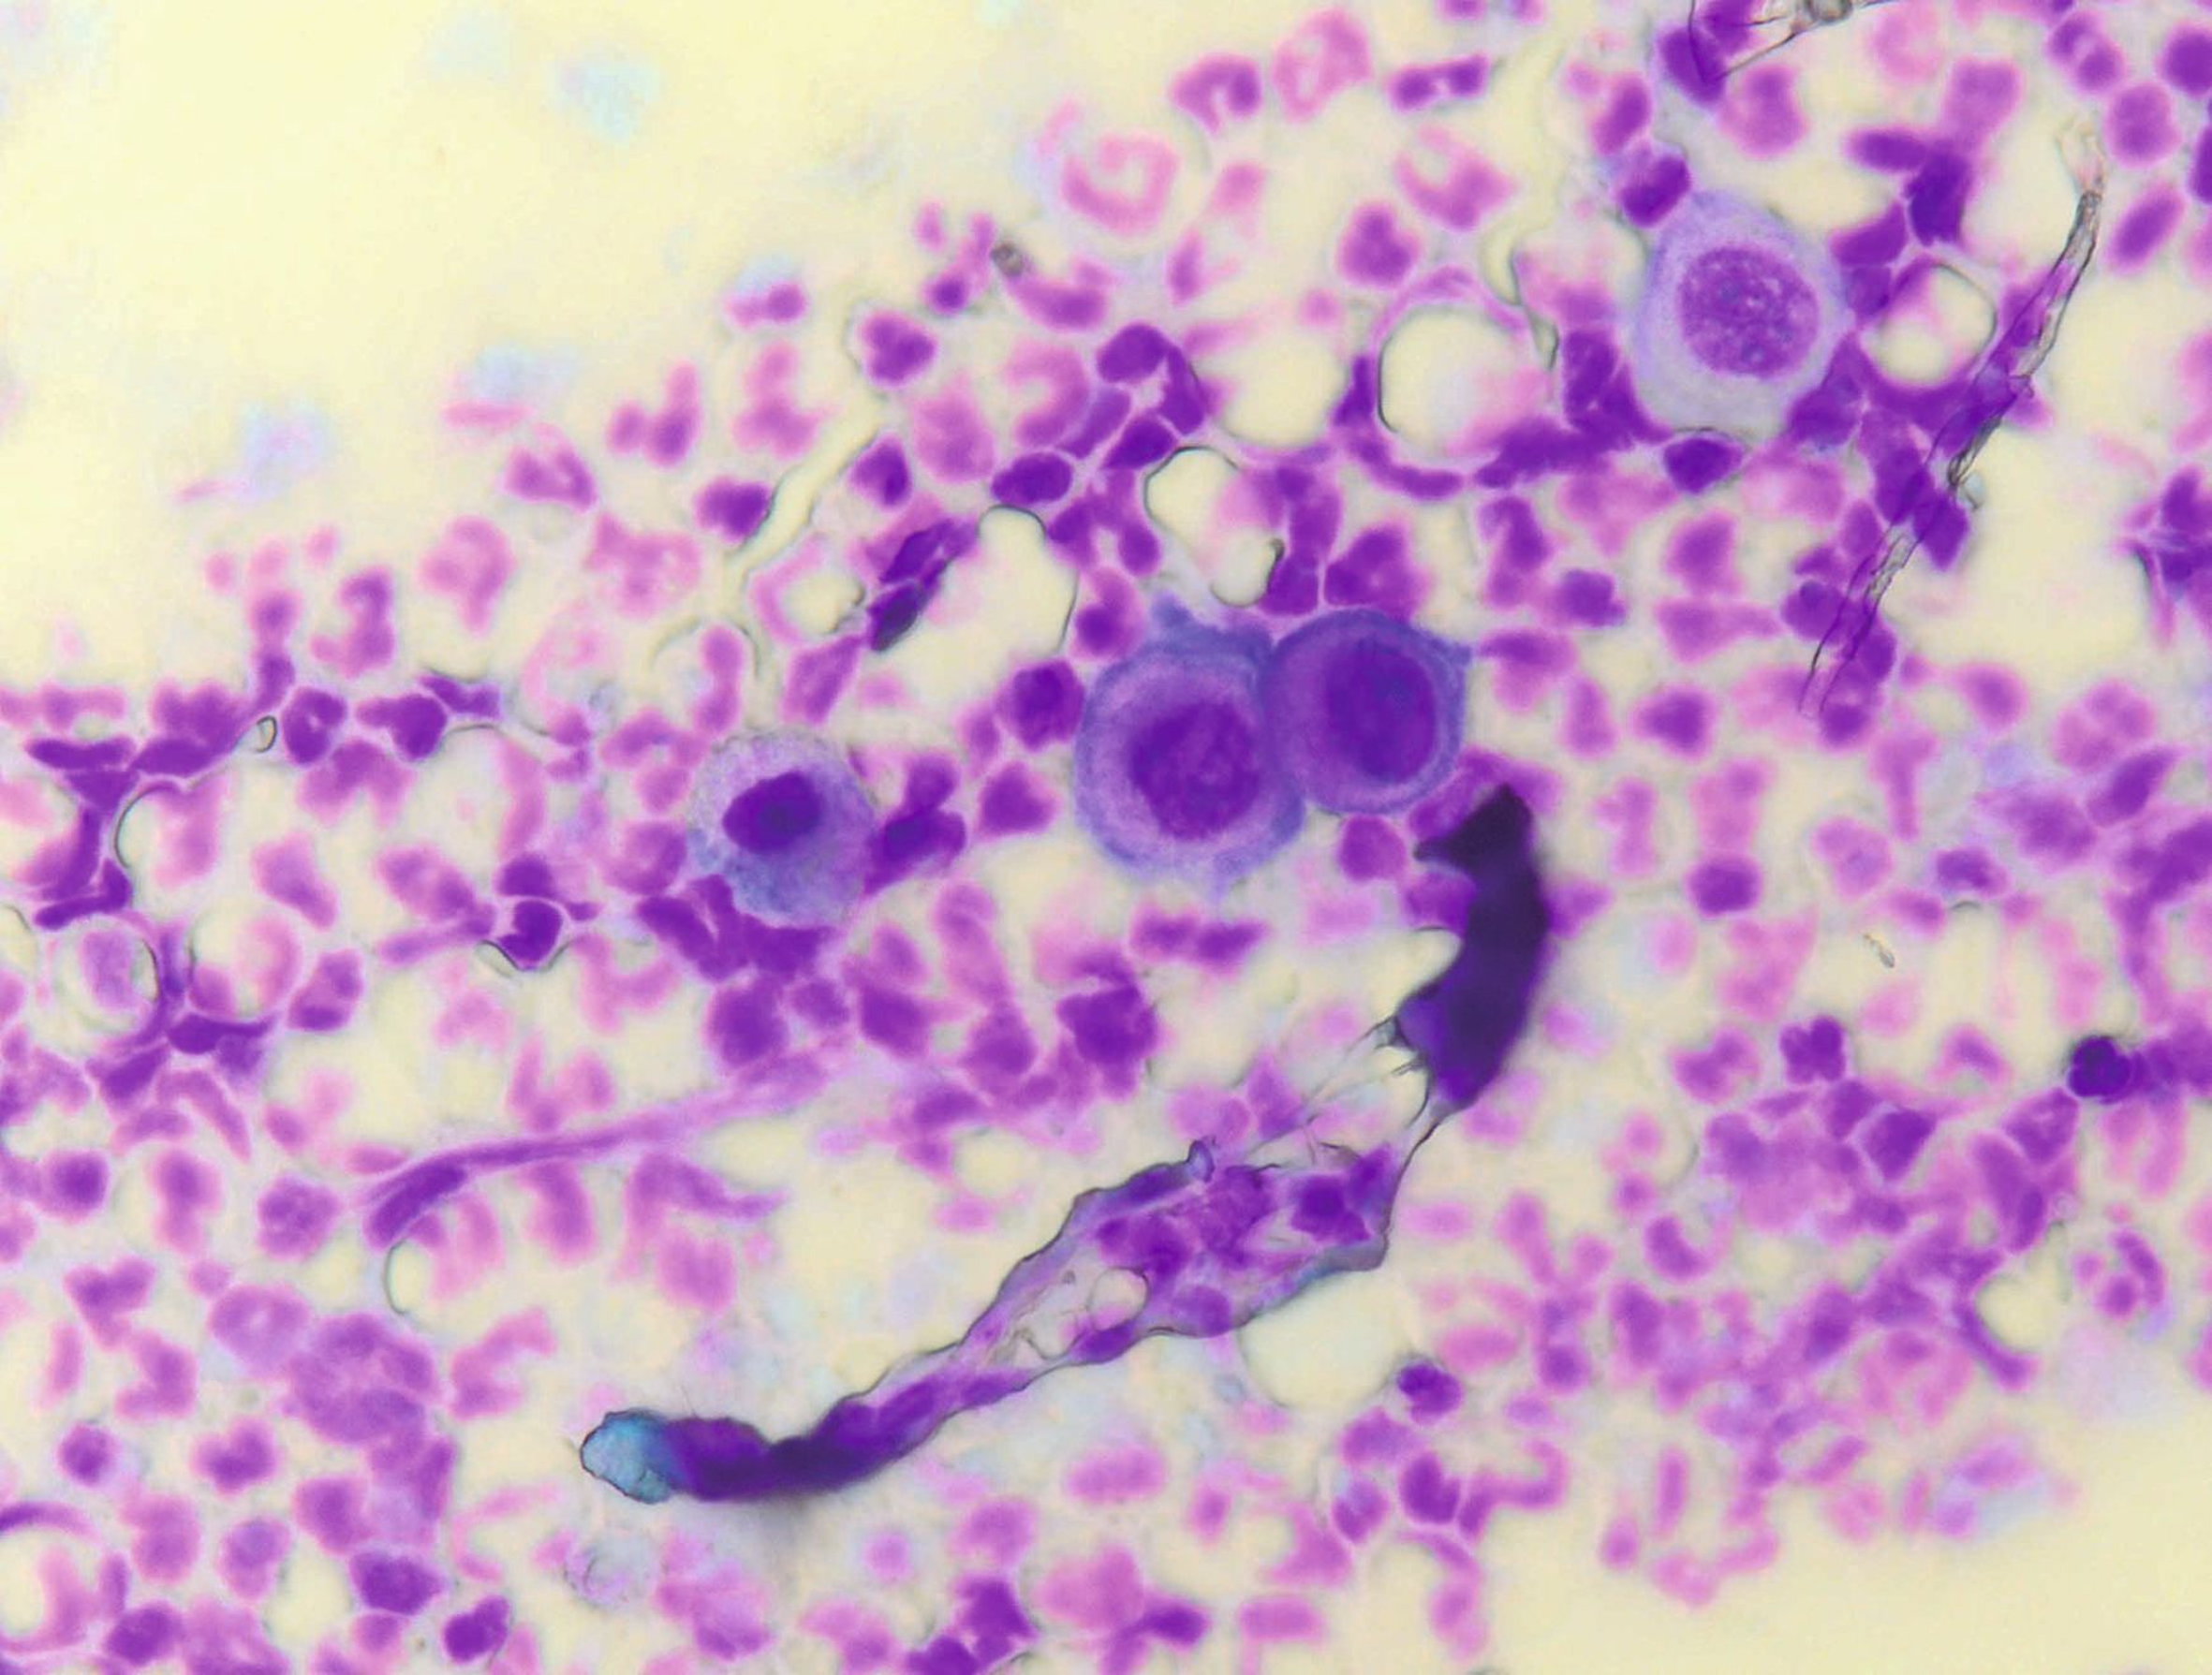 """Cytology in feline pemphigus foliaceus; note the rounded (acantholytic) keratinocytes in small clusters (like """"fried eggs"""") surrounded by neutrophils."""